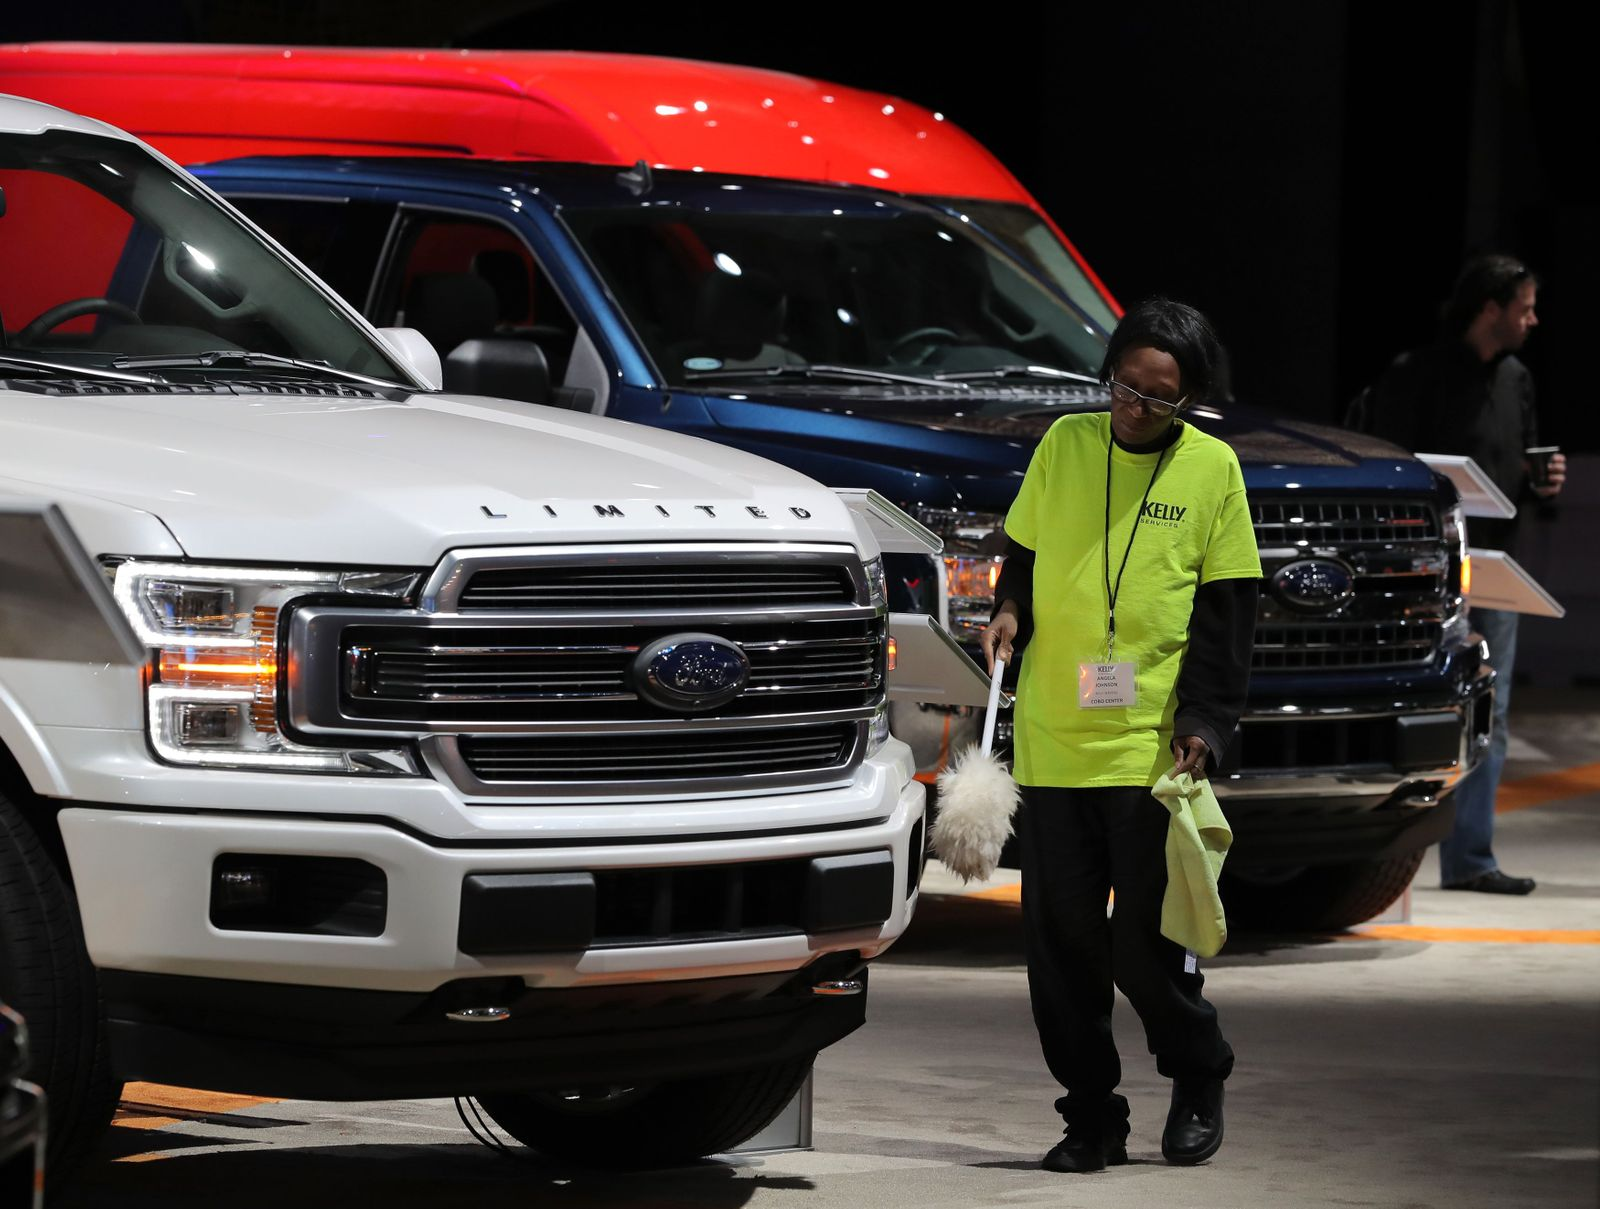 Worker cleans Ford pickup truck at the North American International Auto Show in Detroit, Michigan